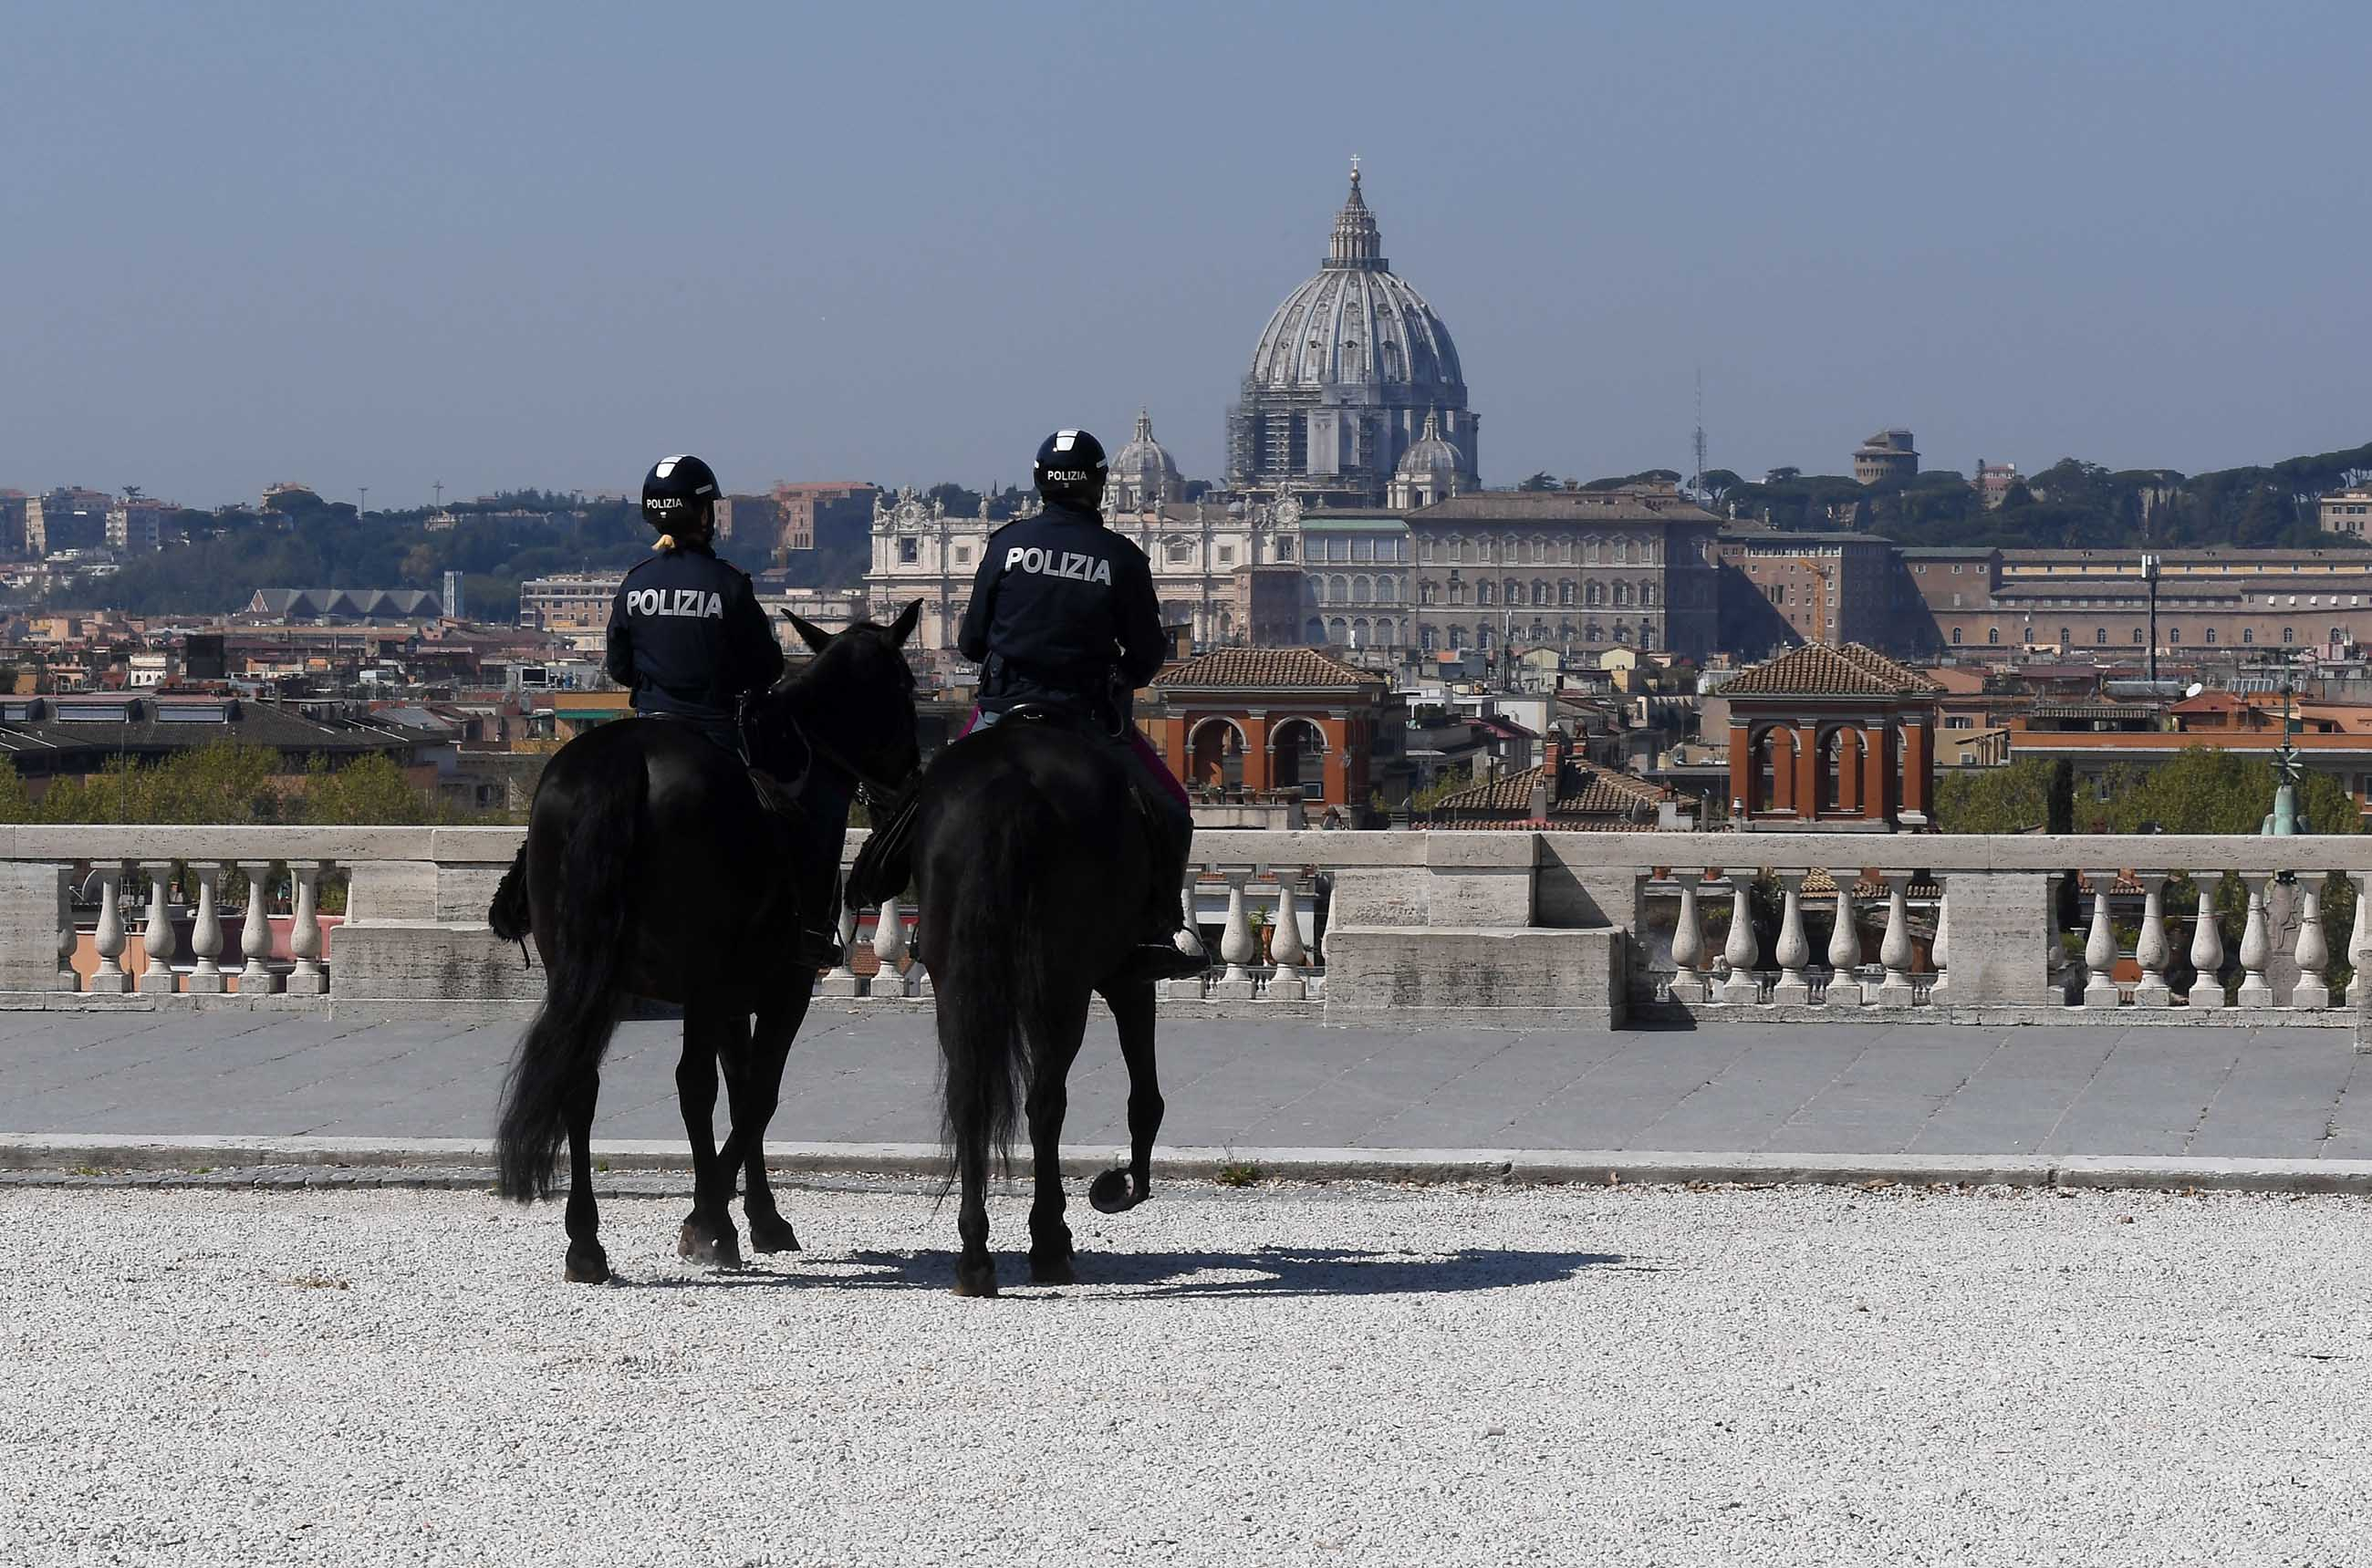 Mounted police patrol in Rome, Italy, on April 11.